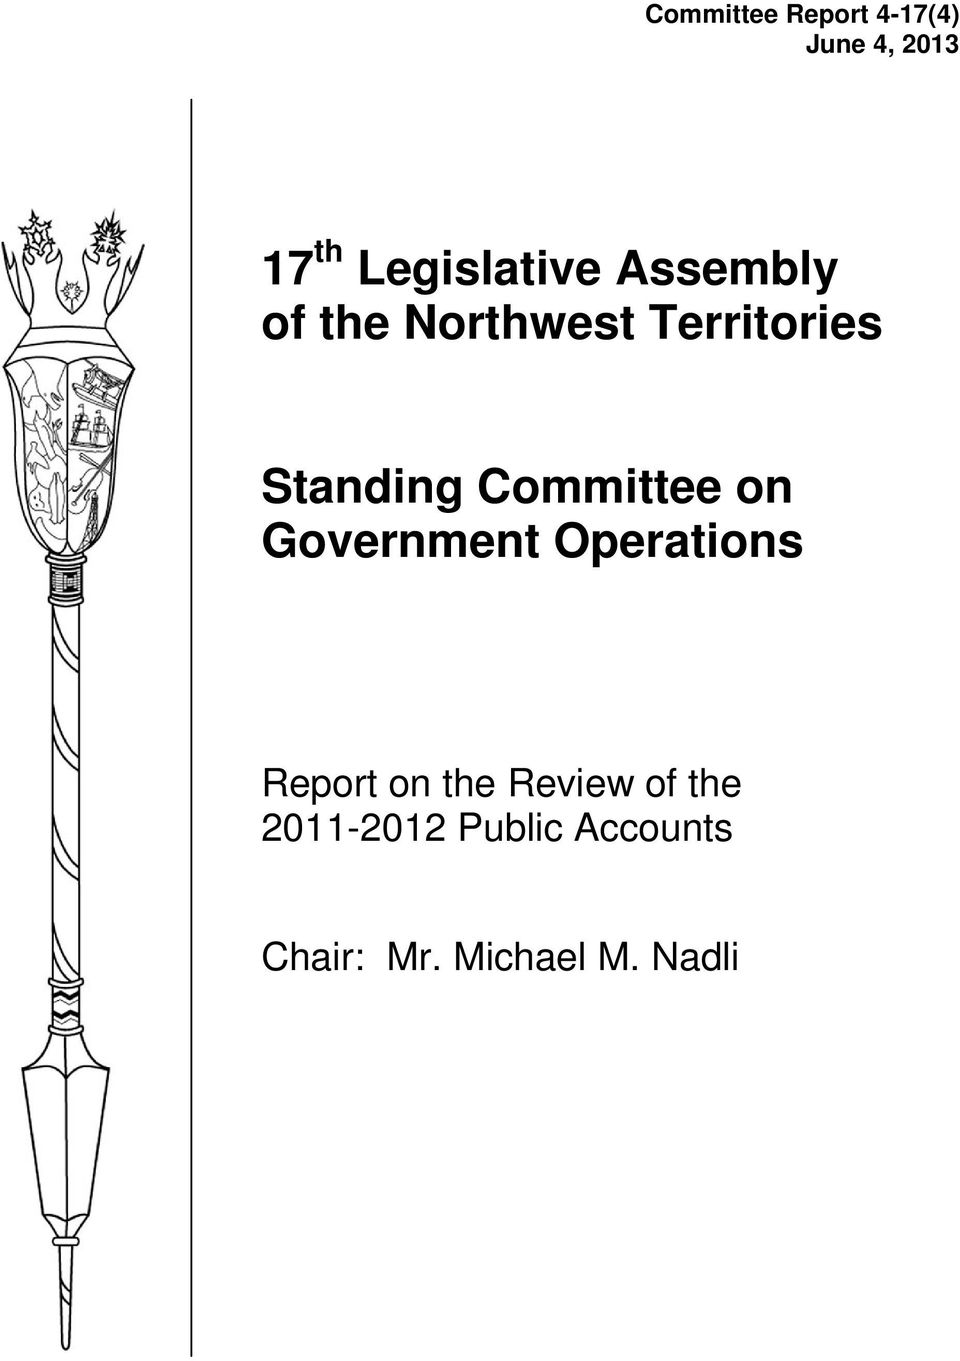 Standing Committee on Government Operations Report on